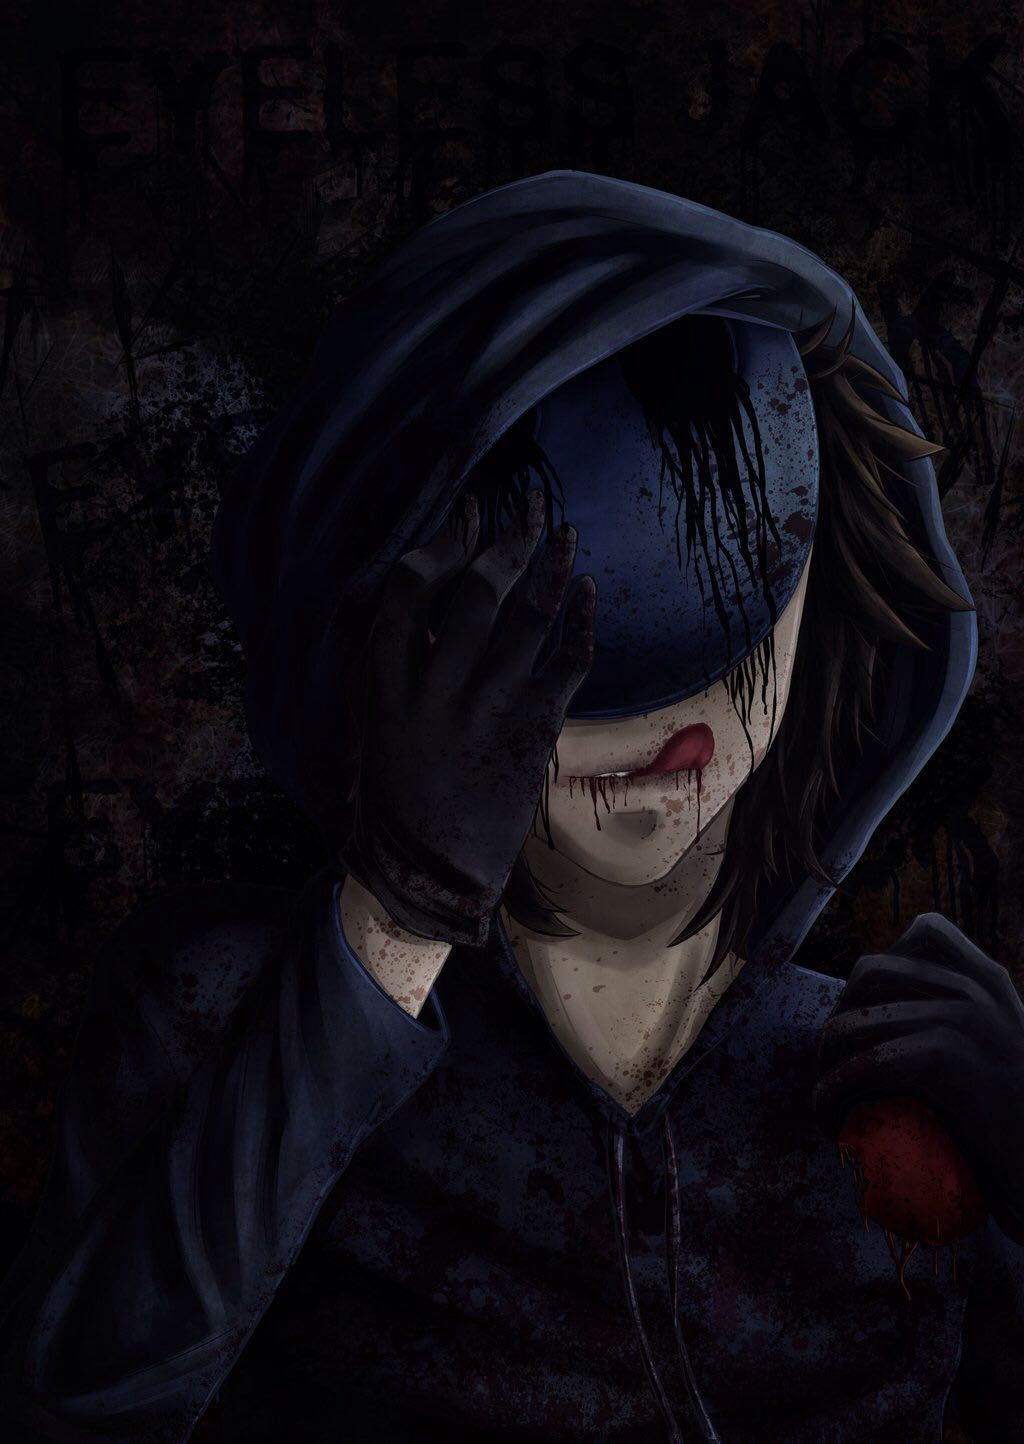 Creepypasta X reader +lemon one shots - Eyeless jack x